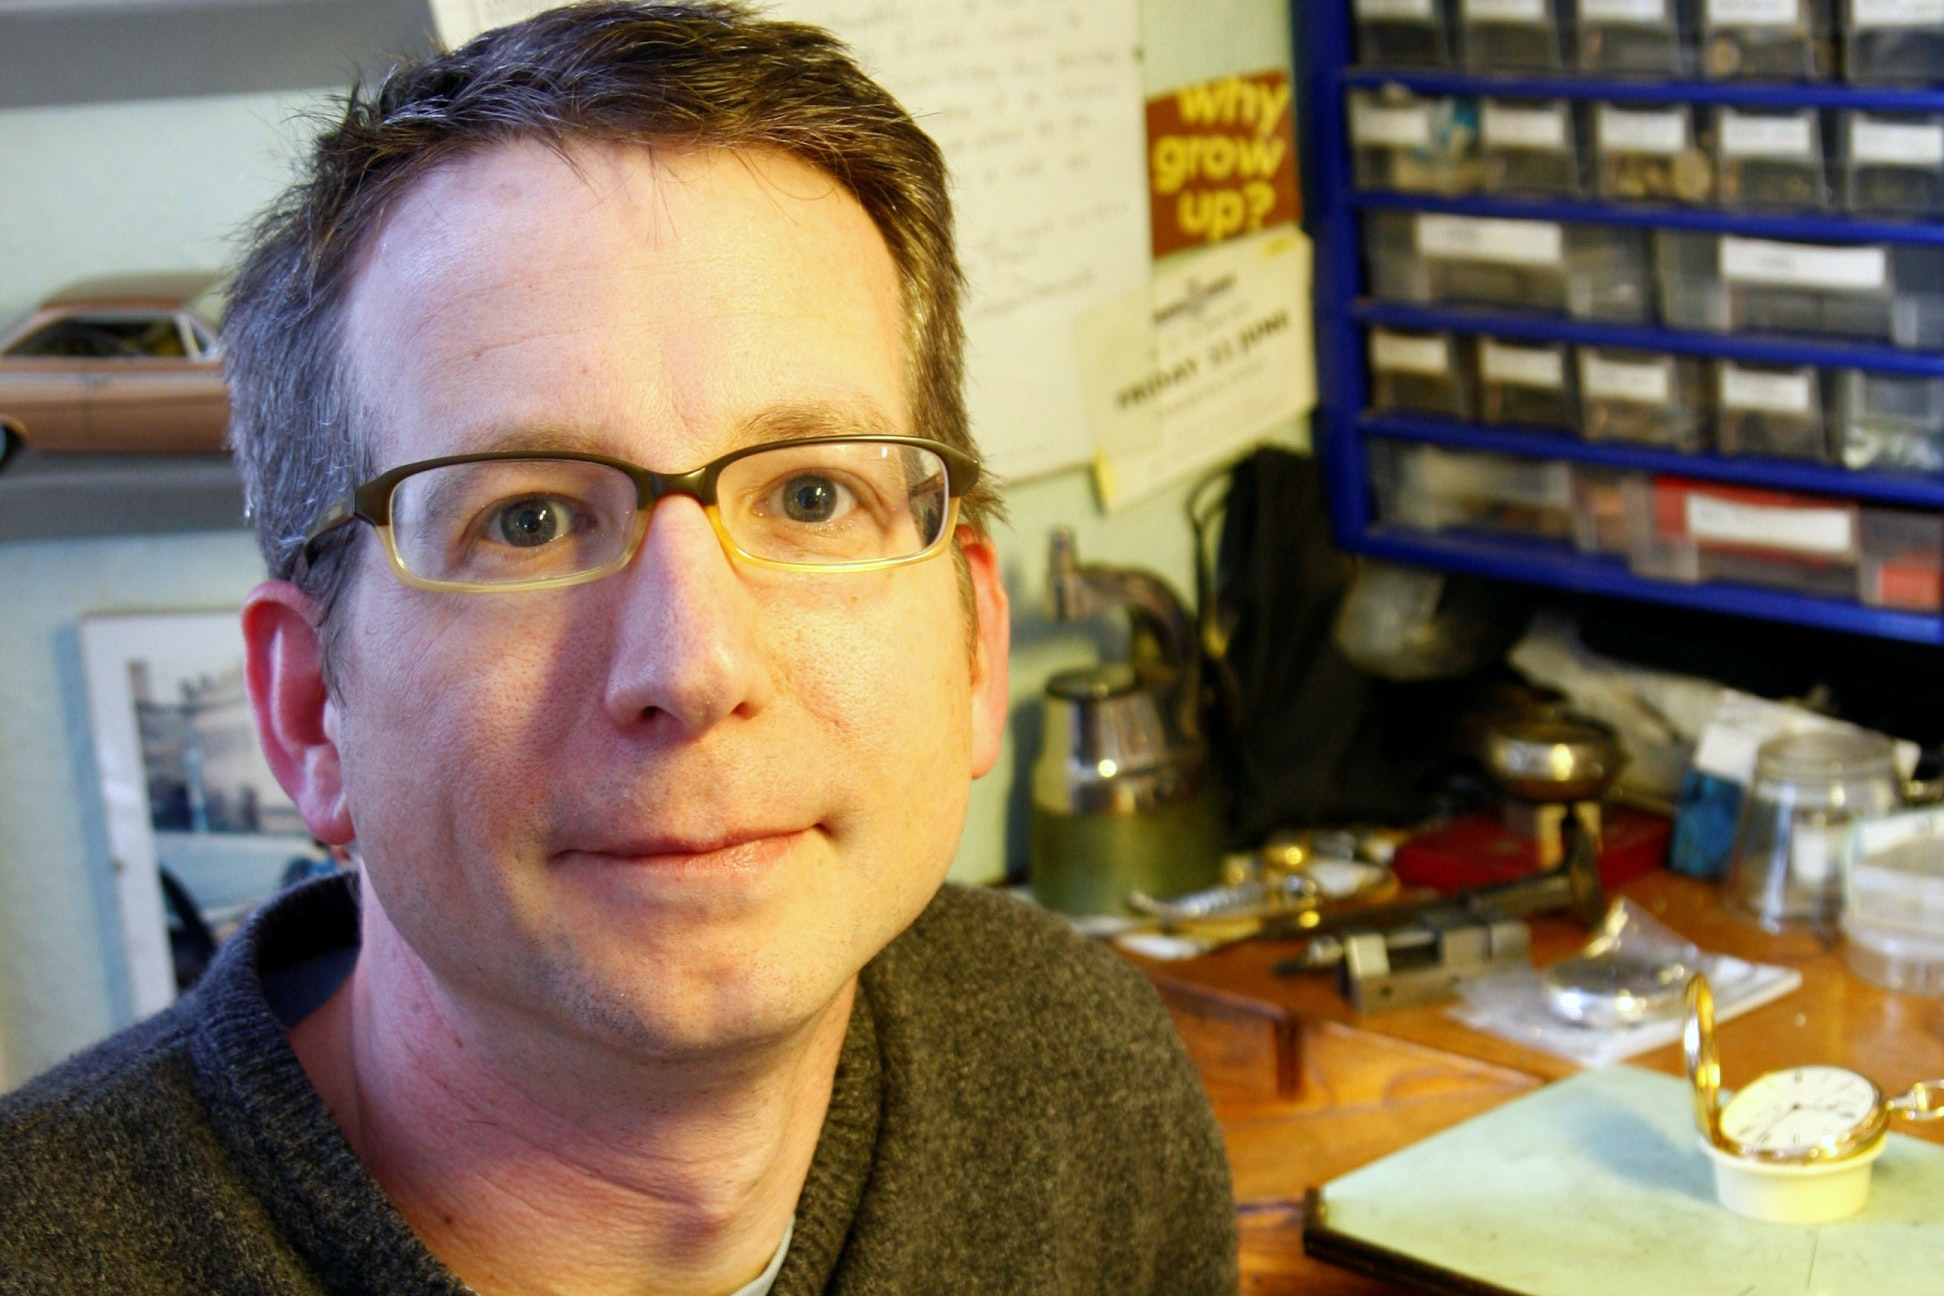 Seth Kennedy, Antiquarian Horologist Antiquarian Horologist Seth Kennedy To Lecture At The Horological Society Of New York Antiquarian Horologist Seth Kennedy To Lecture At The Horological Society Of New York w